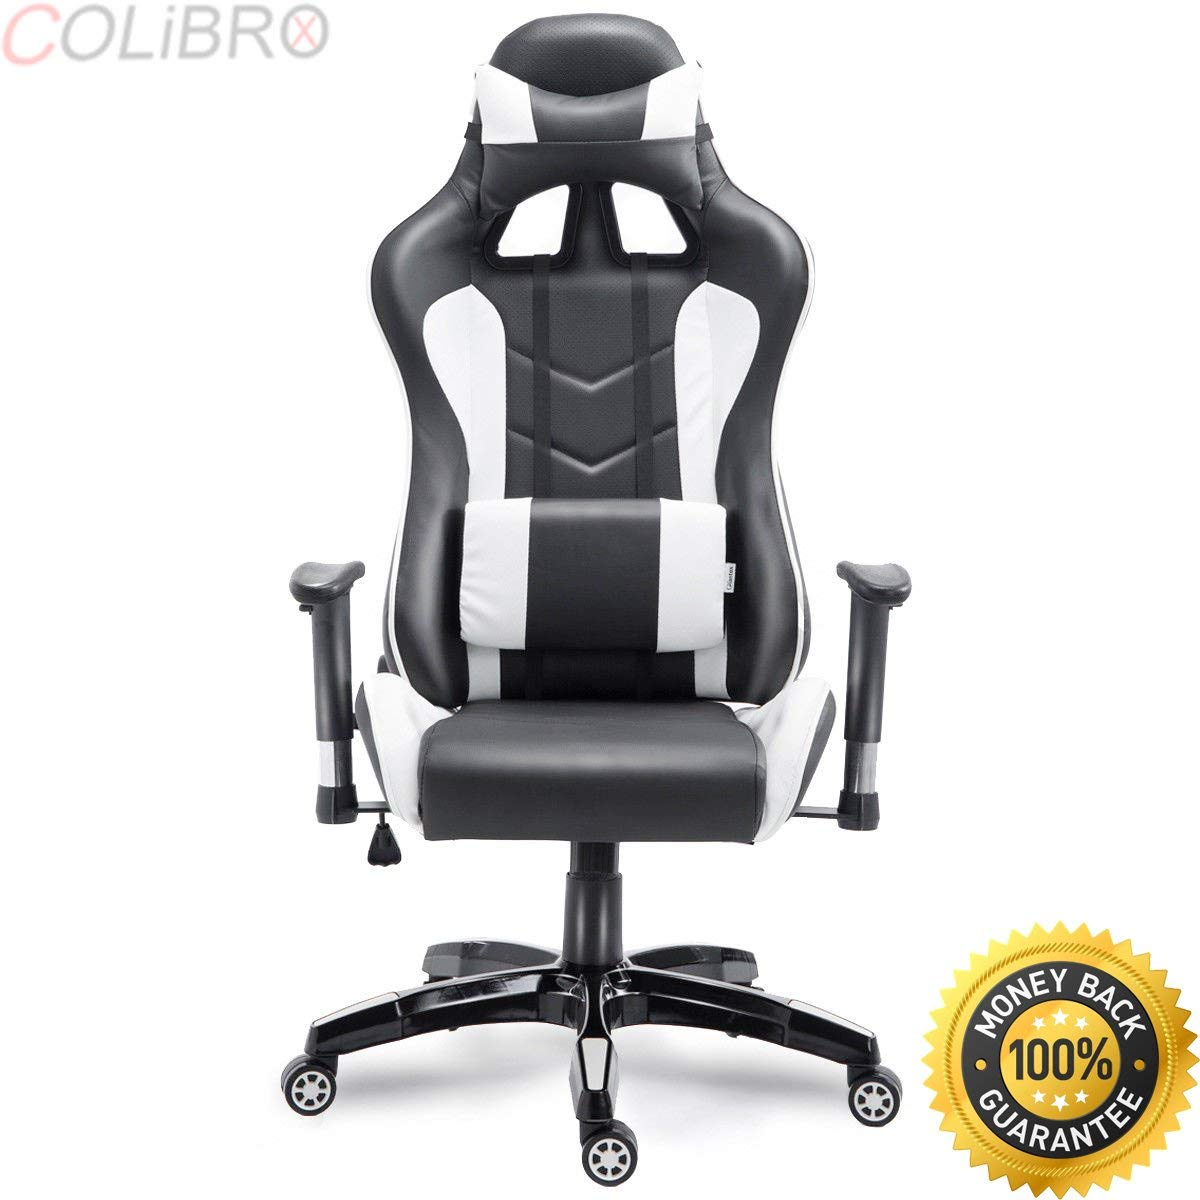 COLIBROX--High Back Executive Racing Reclining Gaming Chair Swivel PU Leather Office Chair. high back executive racing reclining gaming chair swivel pu leather office chair. gaming chair walmart.